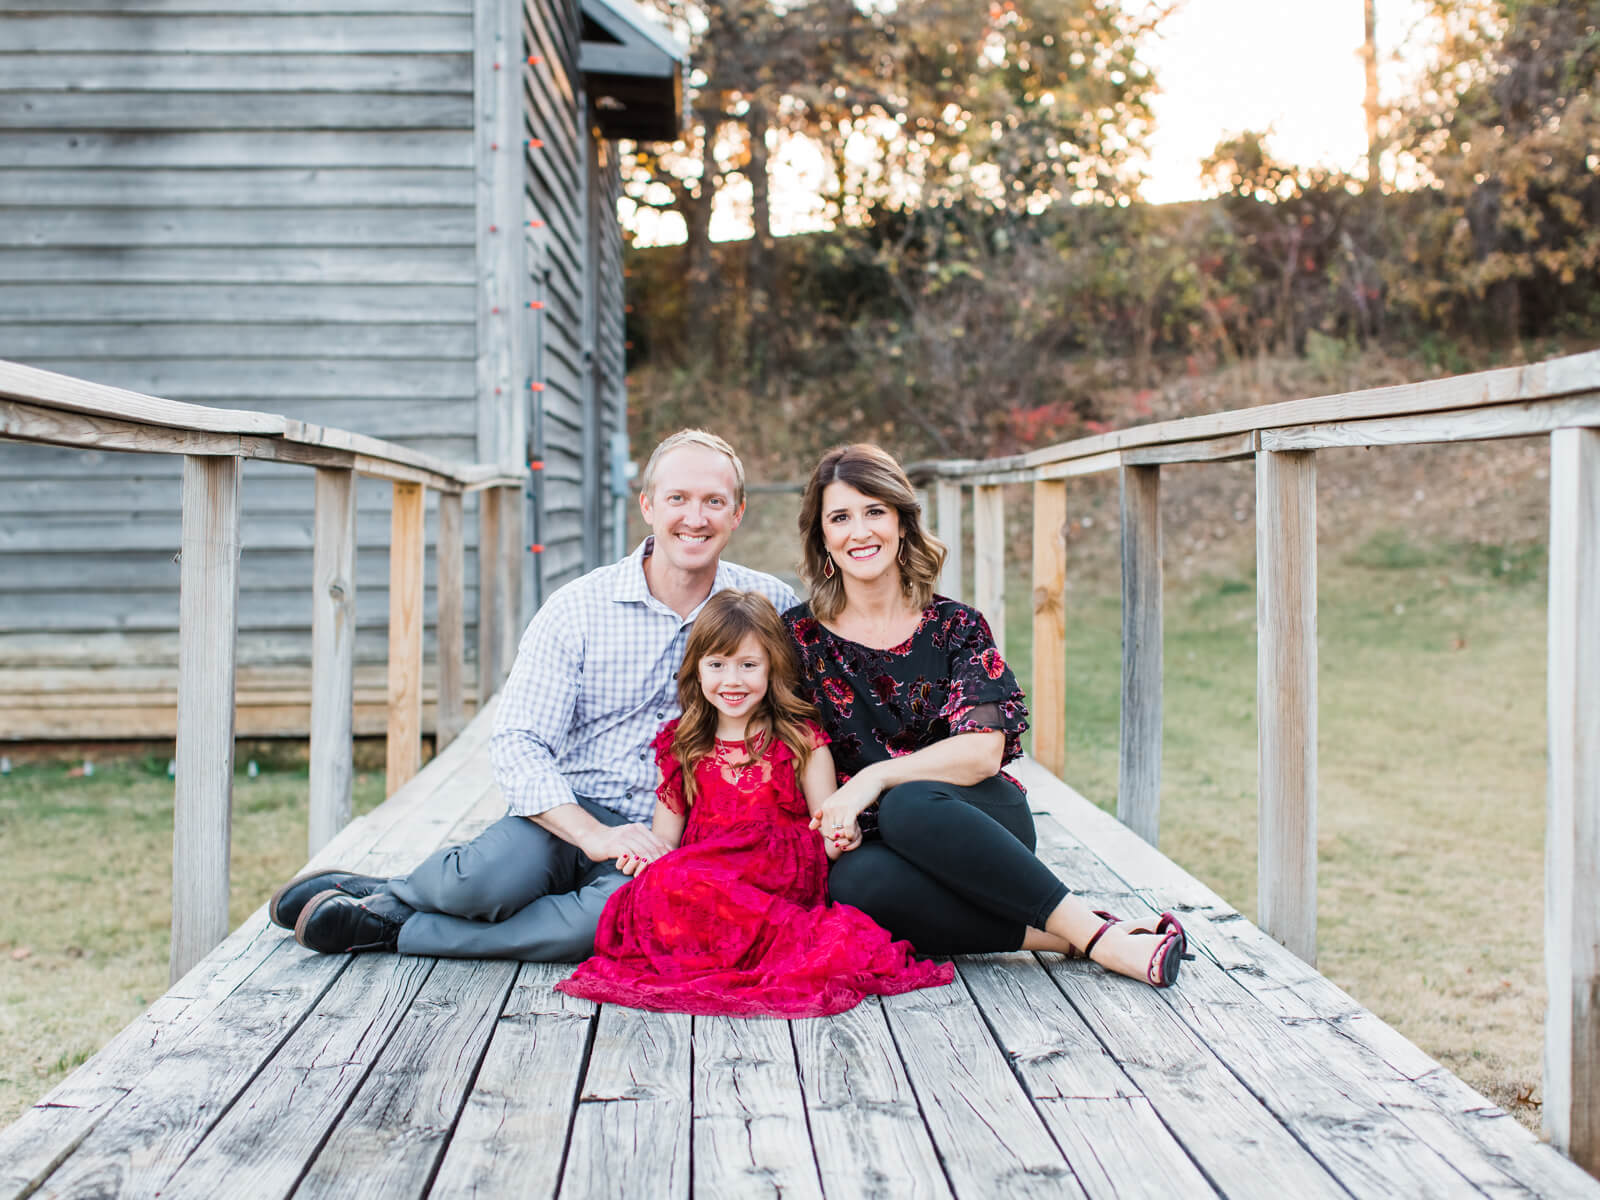 Ditmore Family mini session colleyville, texas-1.jpg